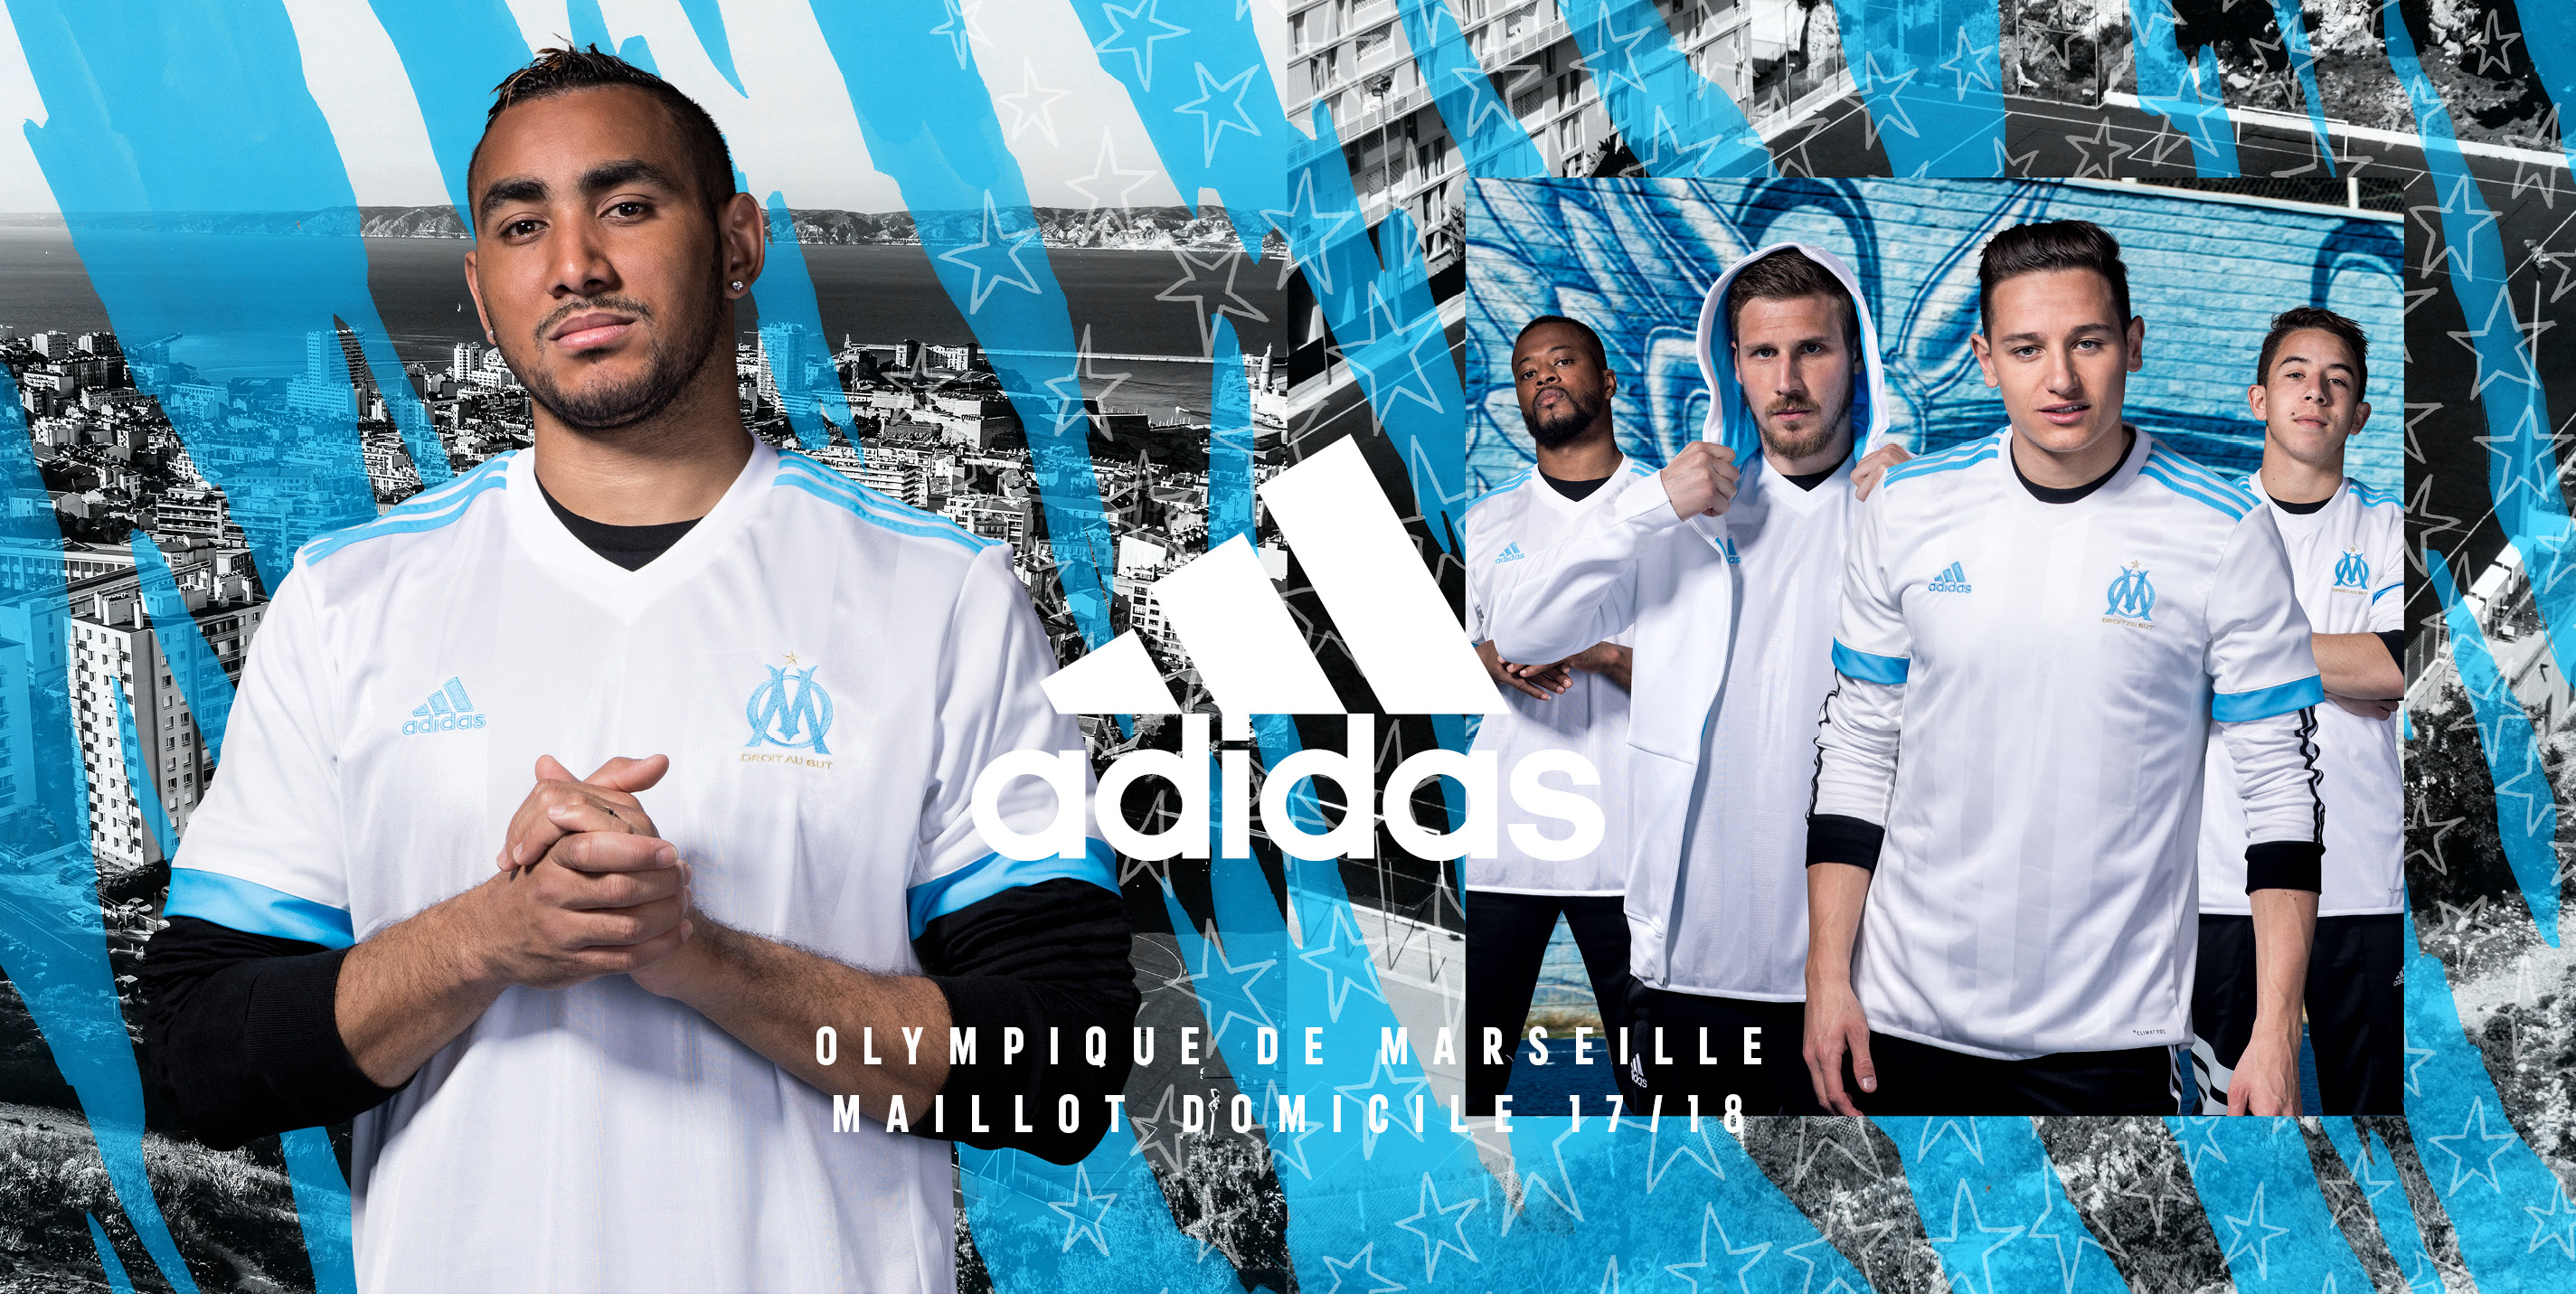 Maillot domicile OM 2017-2018 adidas football